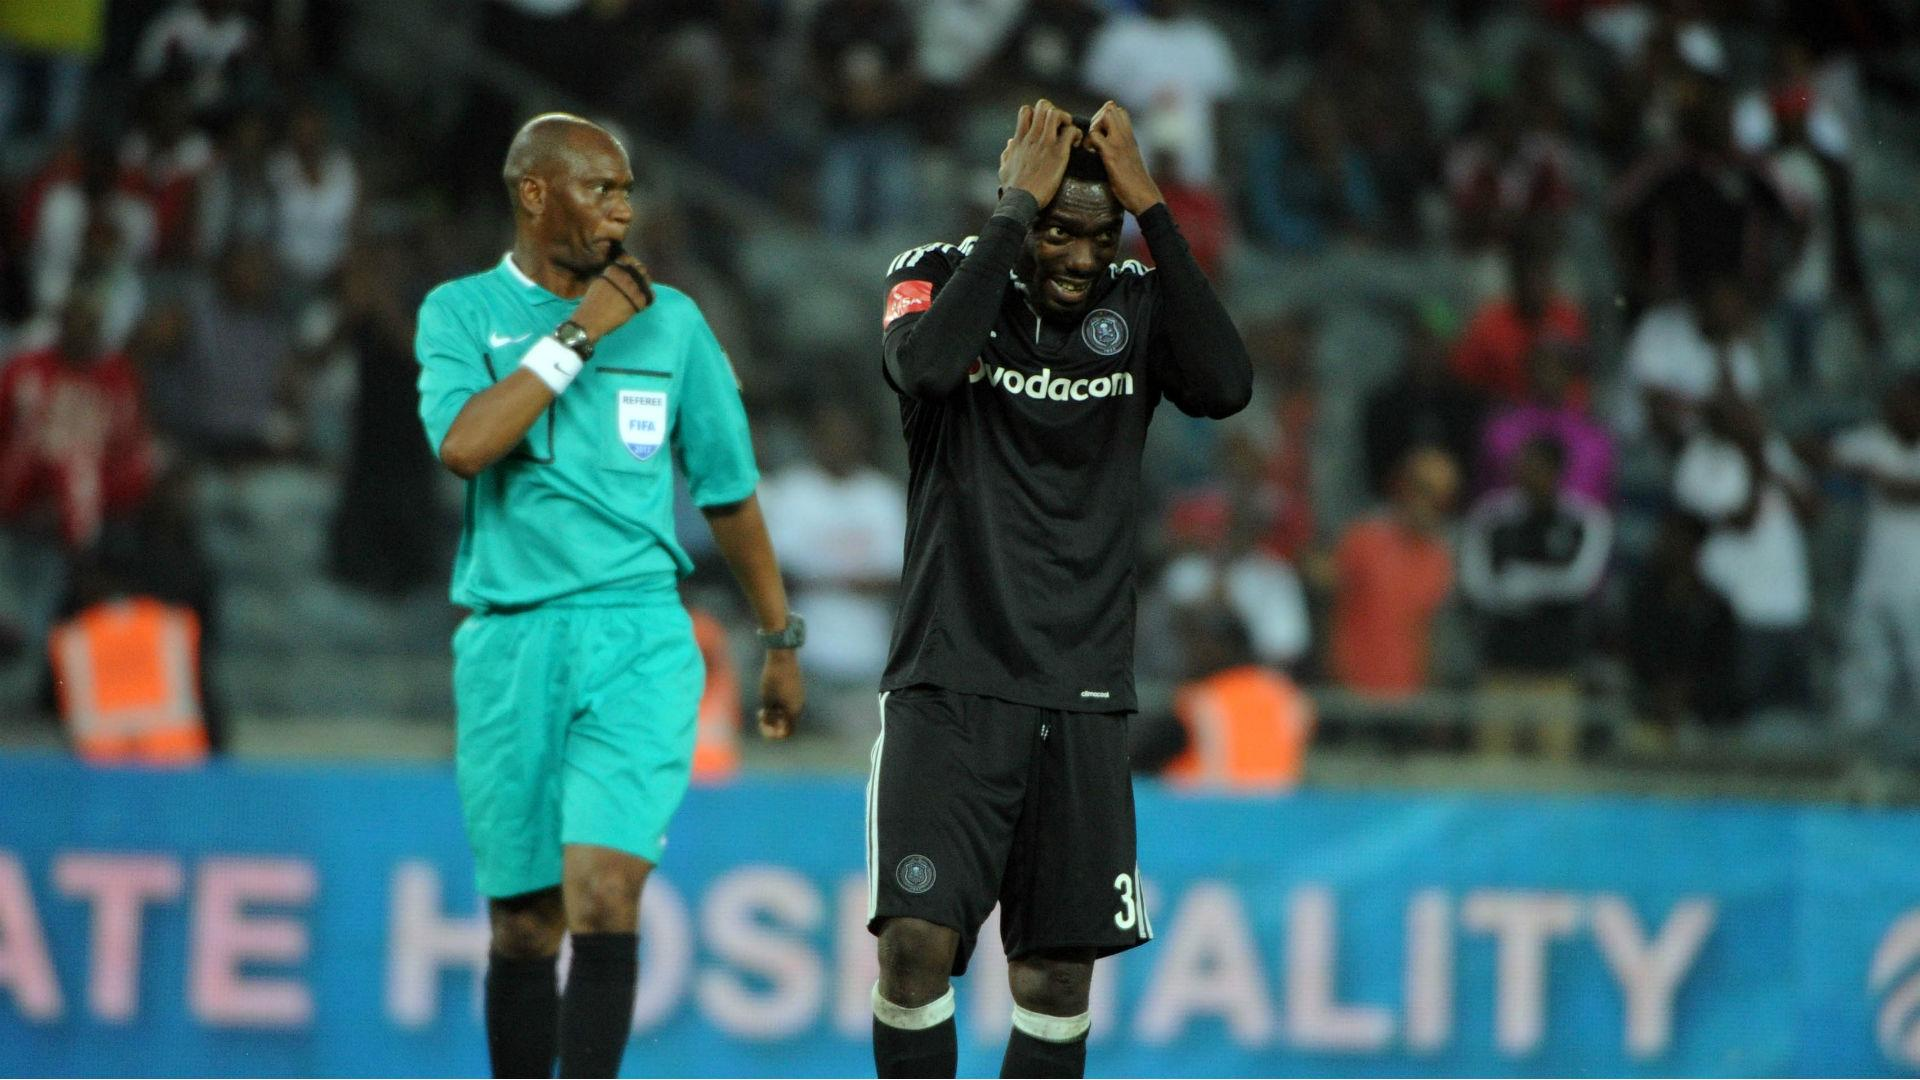 Dove Wome not ruling out permanent Orlando Pirates switch